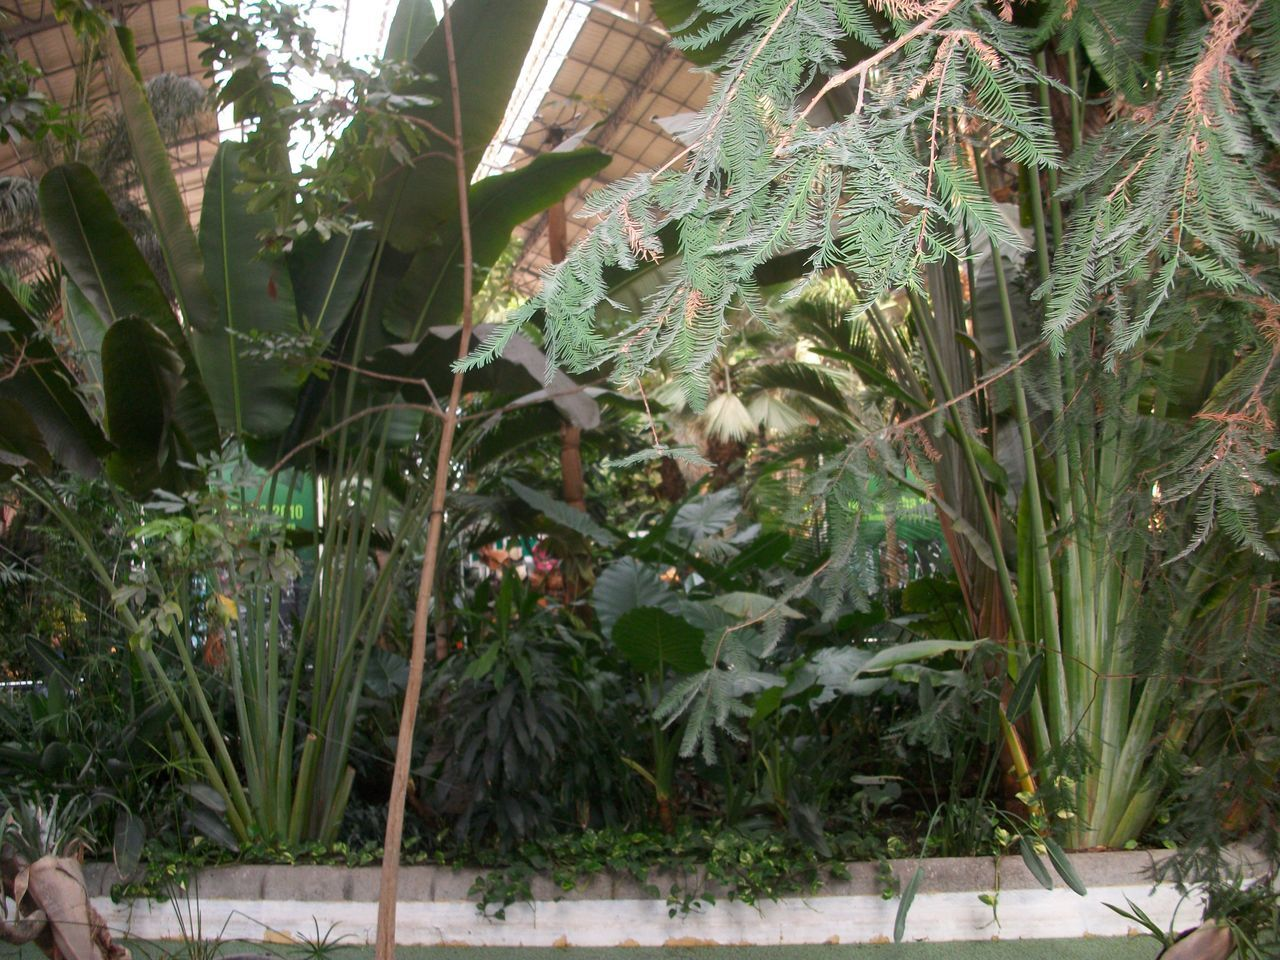 Atocha Train Station Atocha Beauty In Nature Green Color Greenhouse Growth Indoor Leaf Palm Tree Plant Train Station Tree